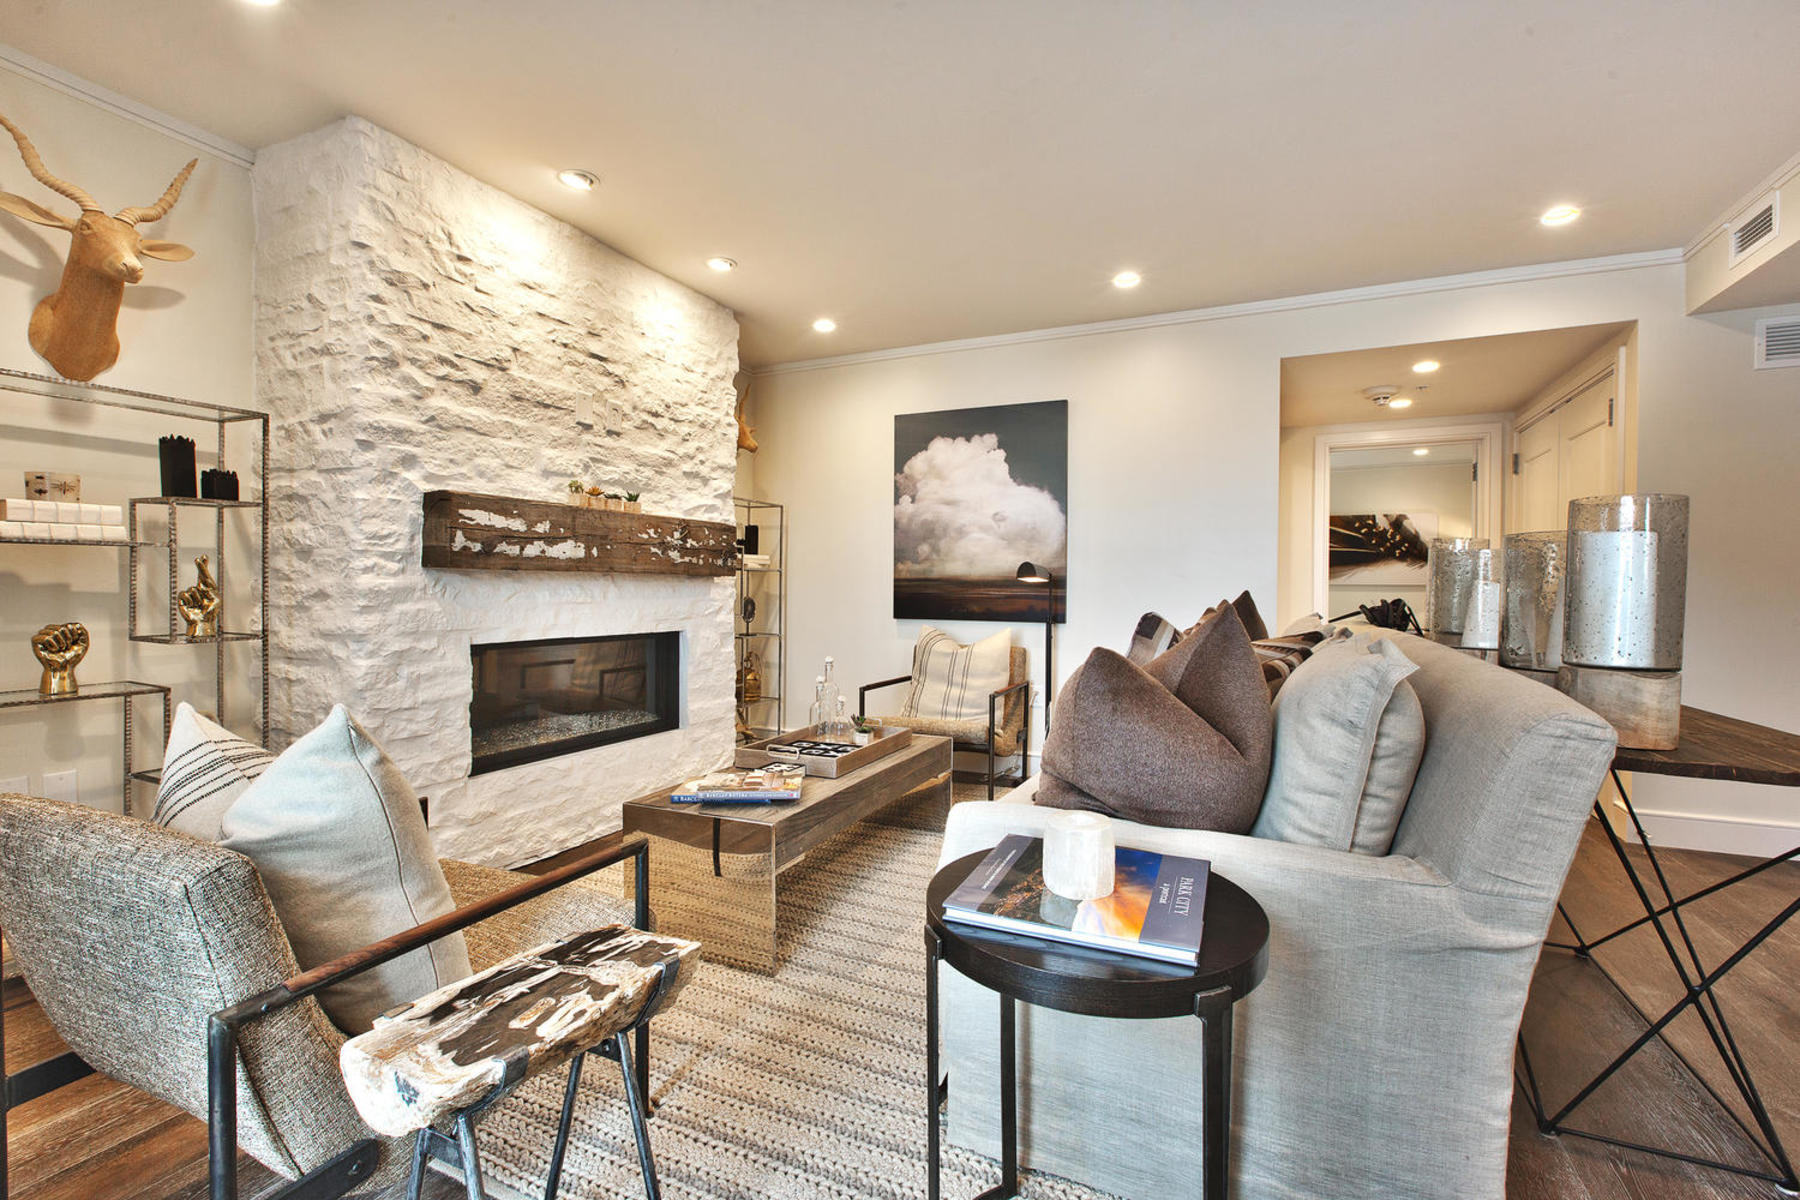 Brand New Condo located directly on Park City's historic Main Street with chairlift across the street